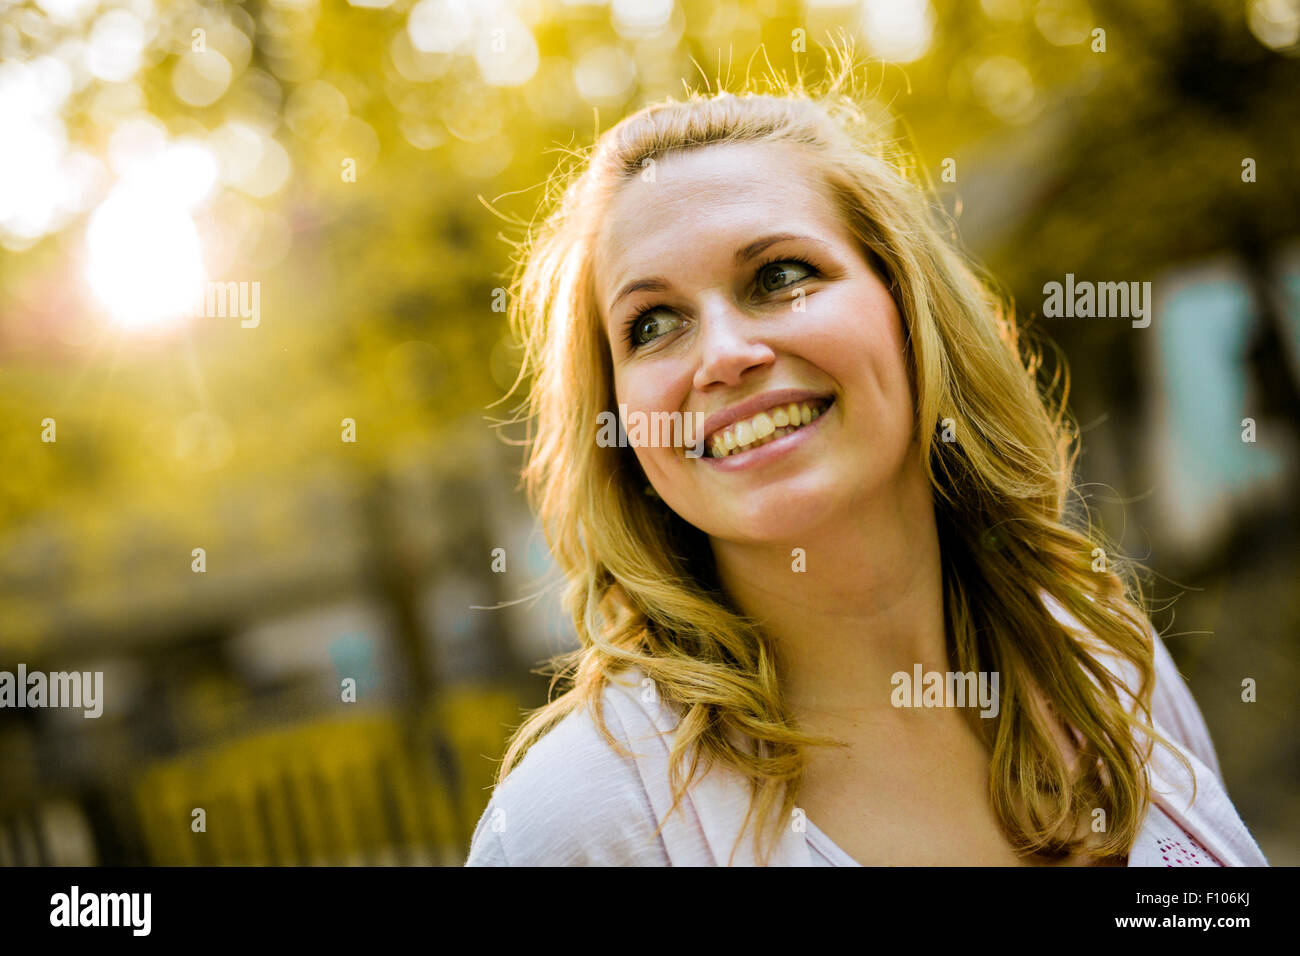 Beautiful young women smiling - Stock Image